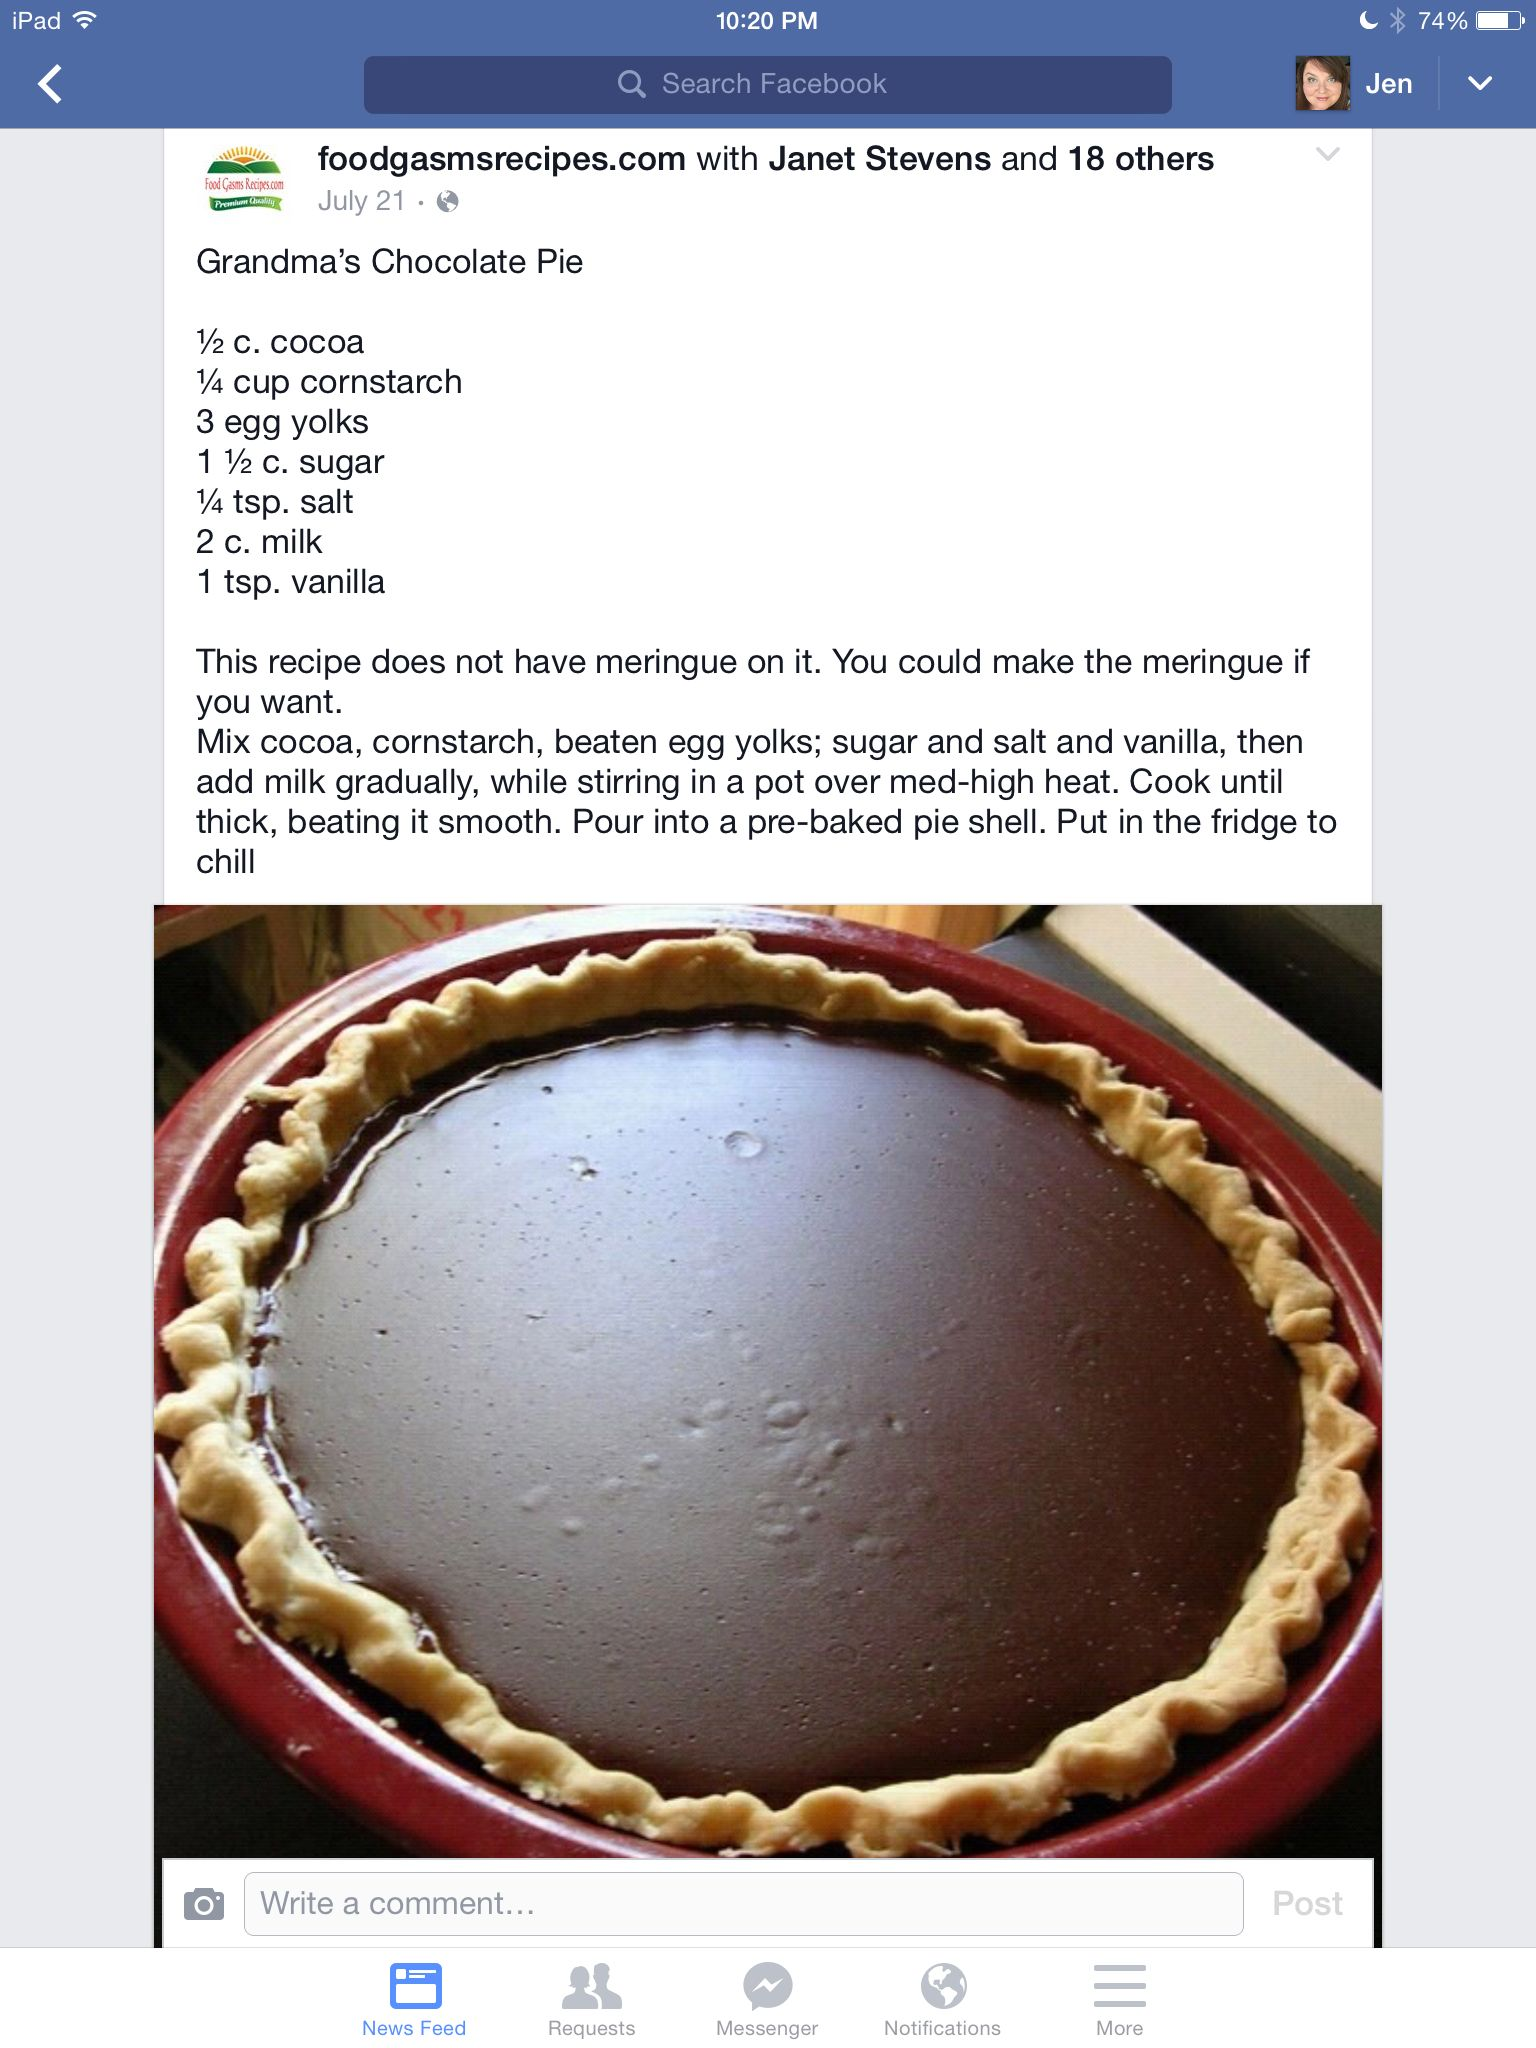 Grandma's chocolate pie | Food: Desserts | Pinterest | More ...